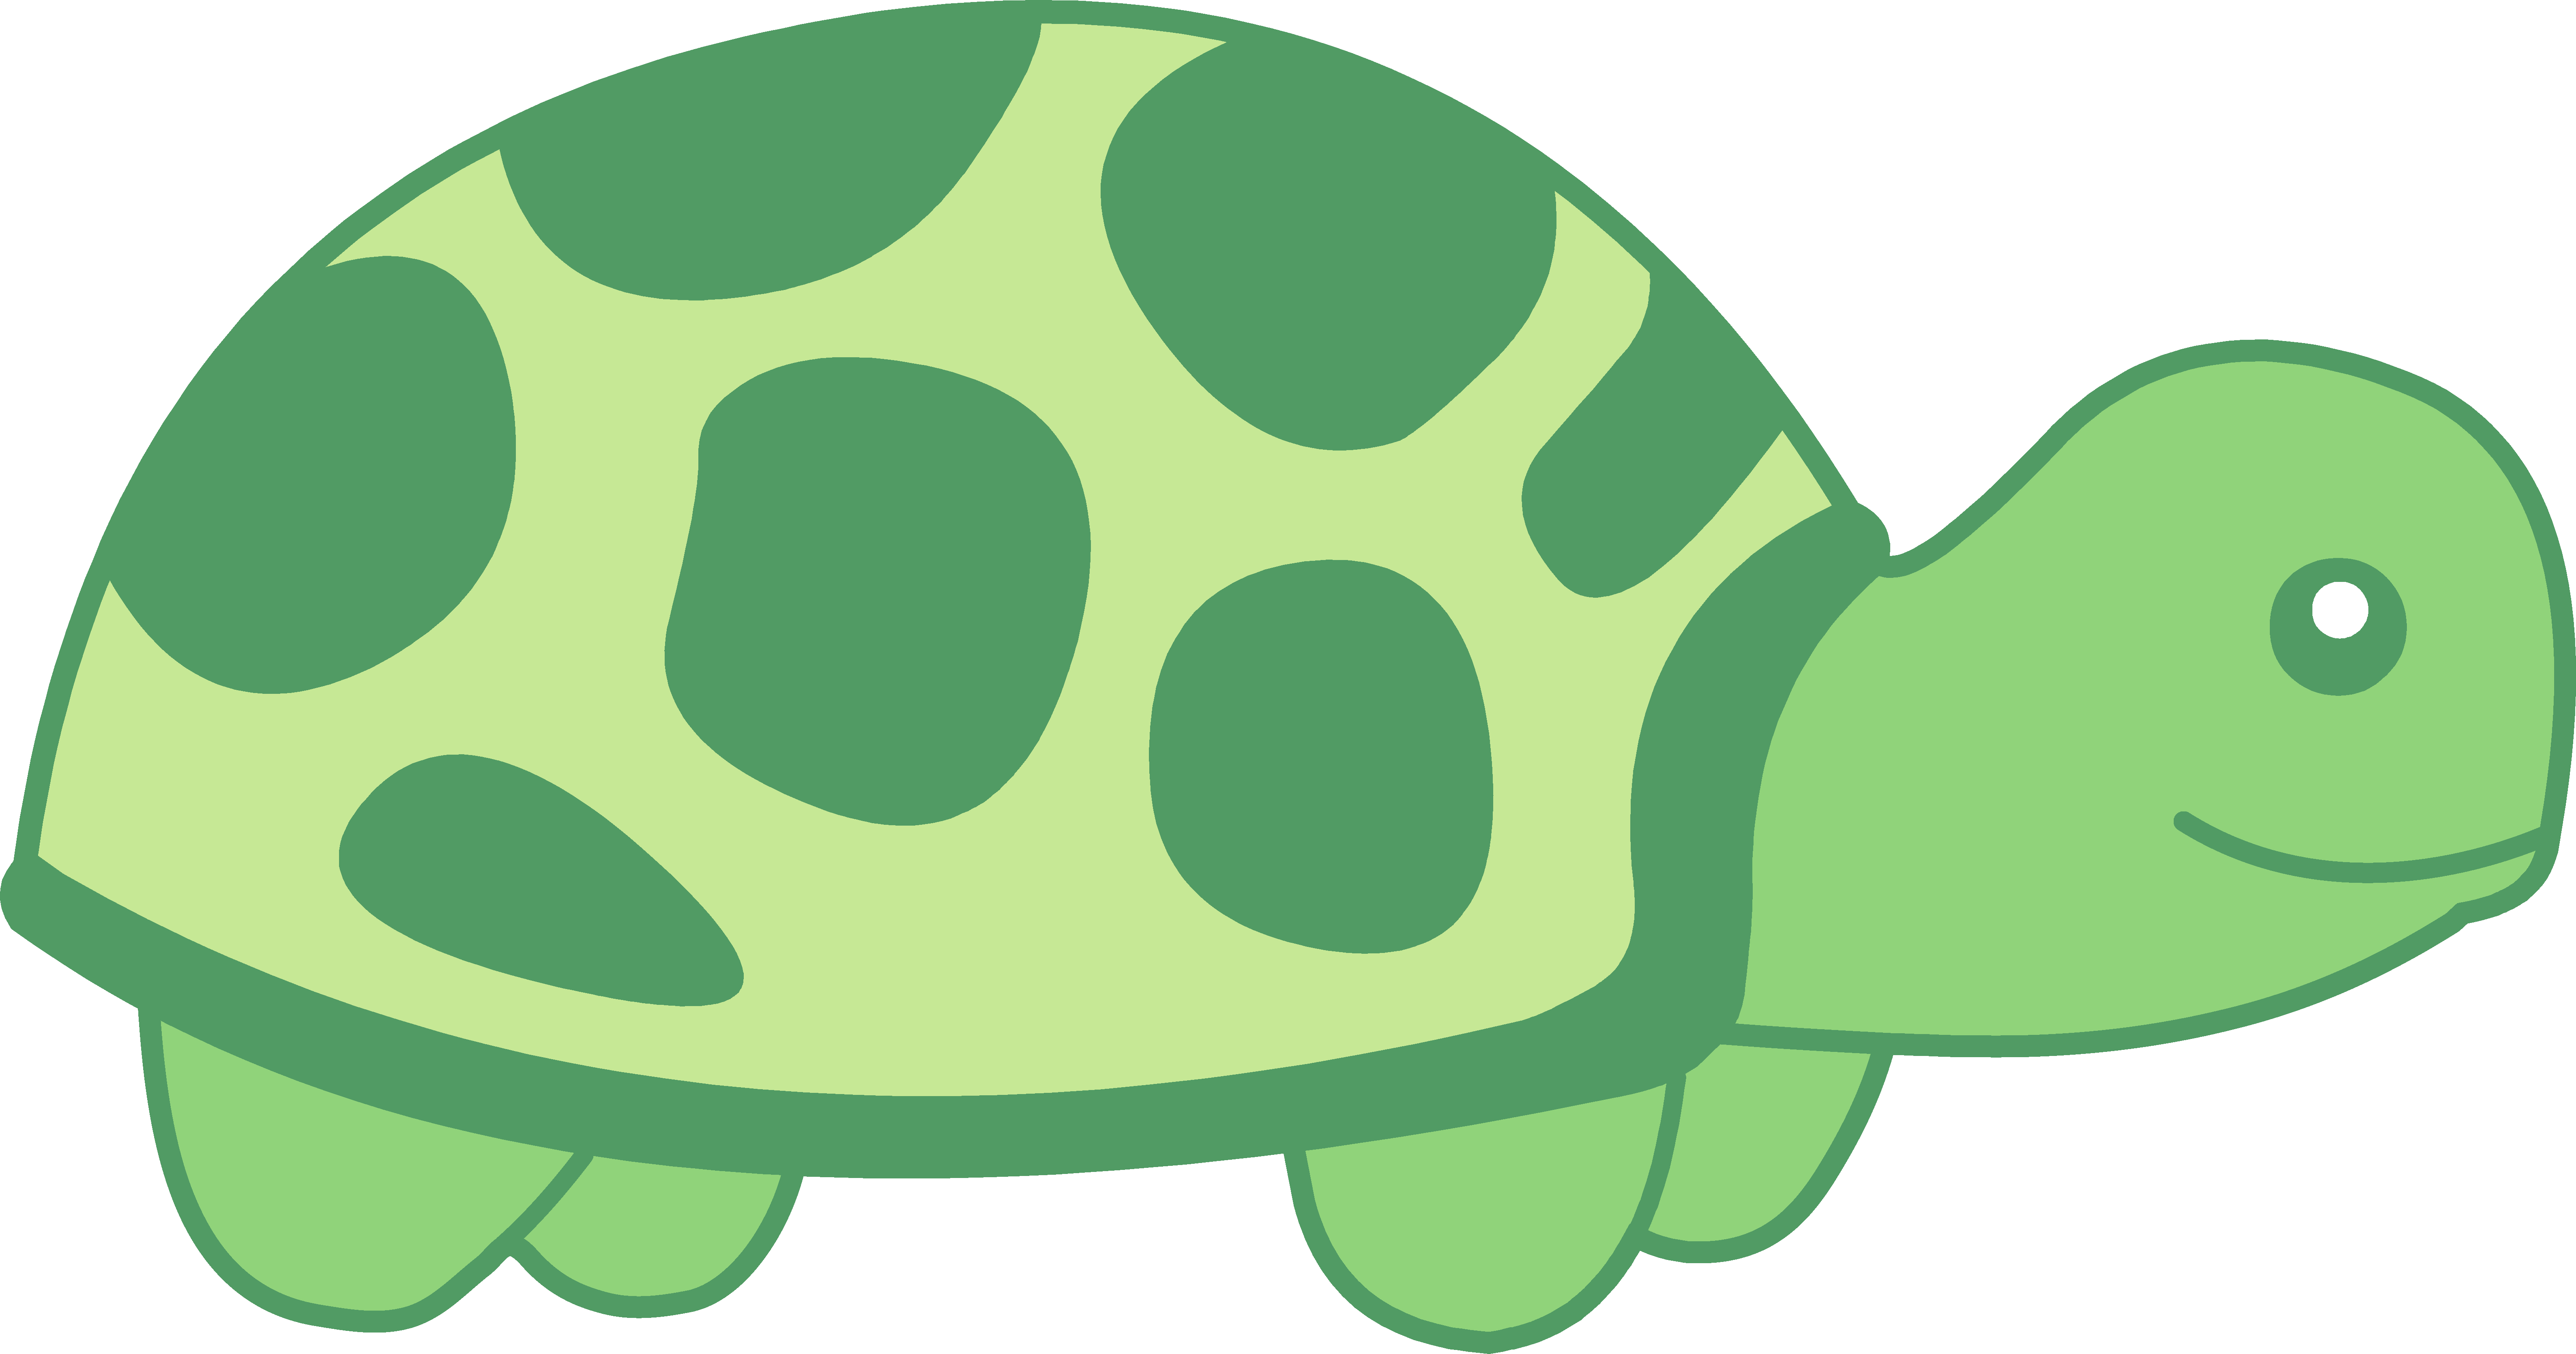 Turtle clipart #2, Download drawings